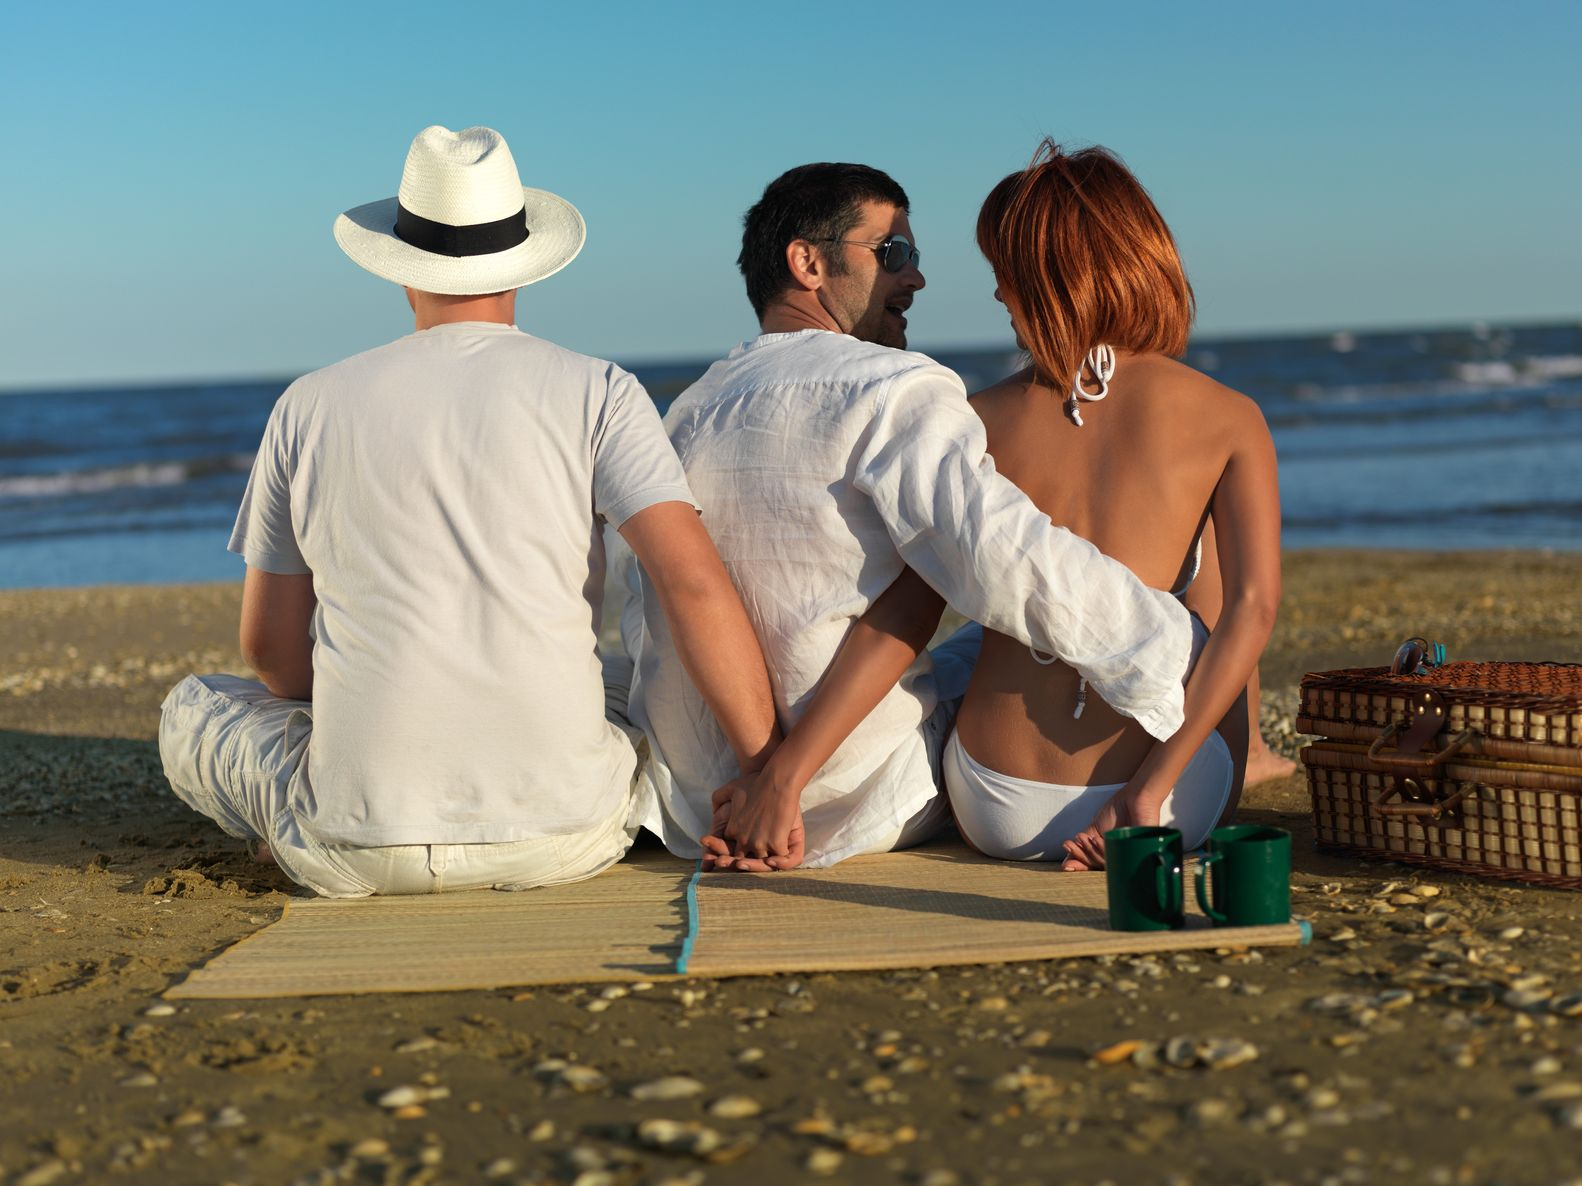 16038750 - young woman talking with the boyfriend, while holding hands with another man, at a picnic by the sea shore